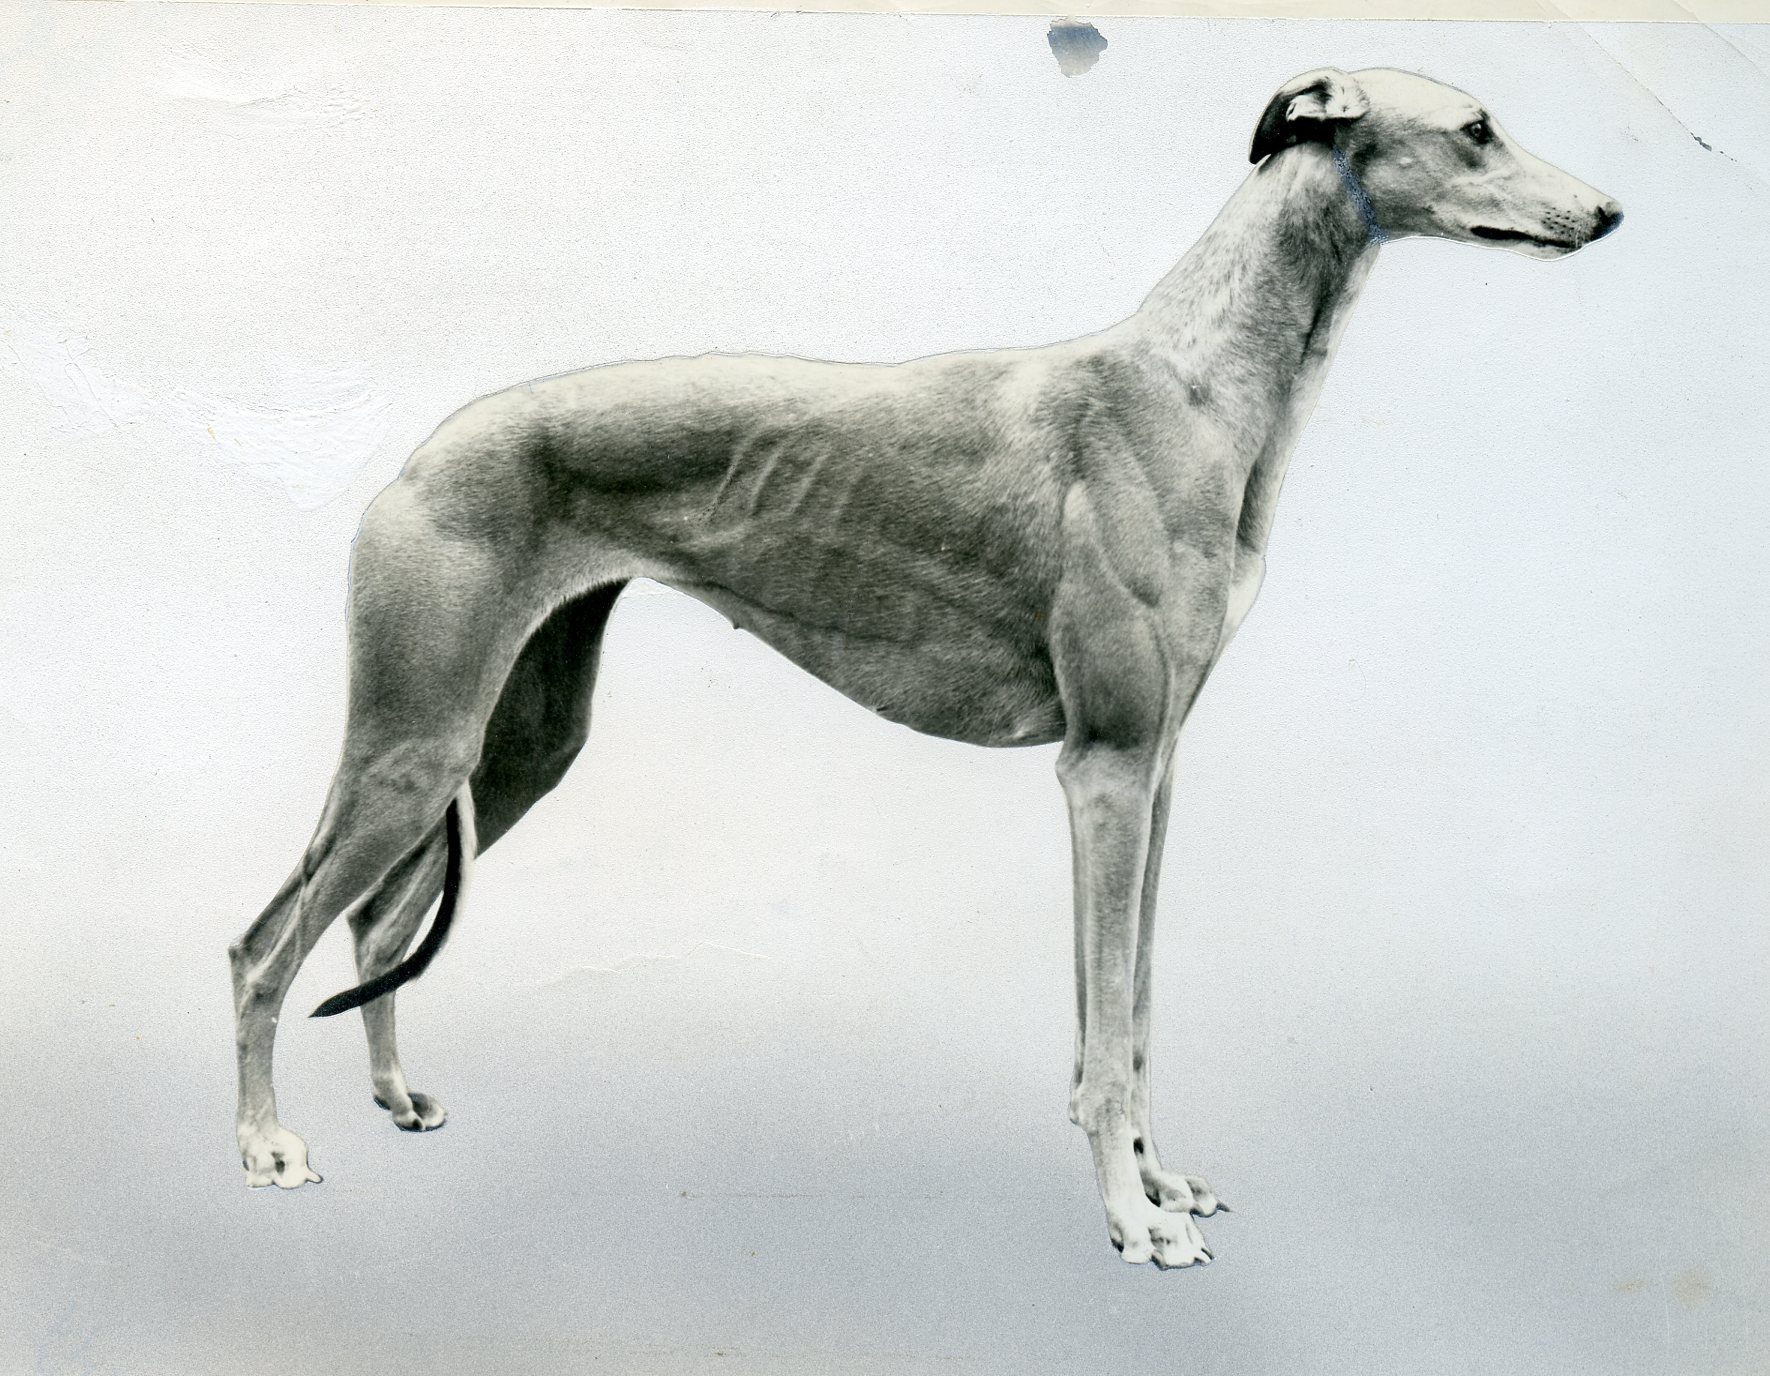 Int. Ch. Guld , b. 1966, dam of more than 20 champions. One of the world's most influential brood bitches.Owned by Ann Gustafsson, Gulds Greyhounds, Sweden. Bred by Göran Bodegård & Bo Bengtson.